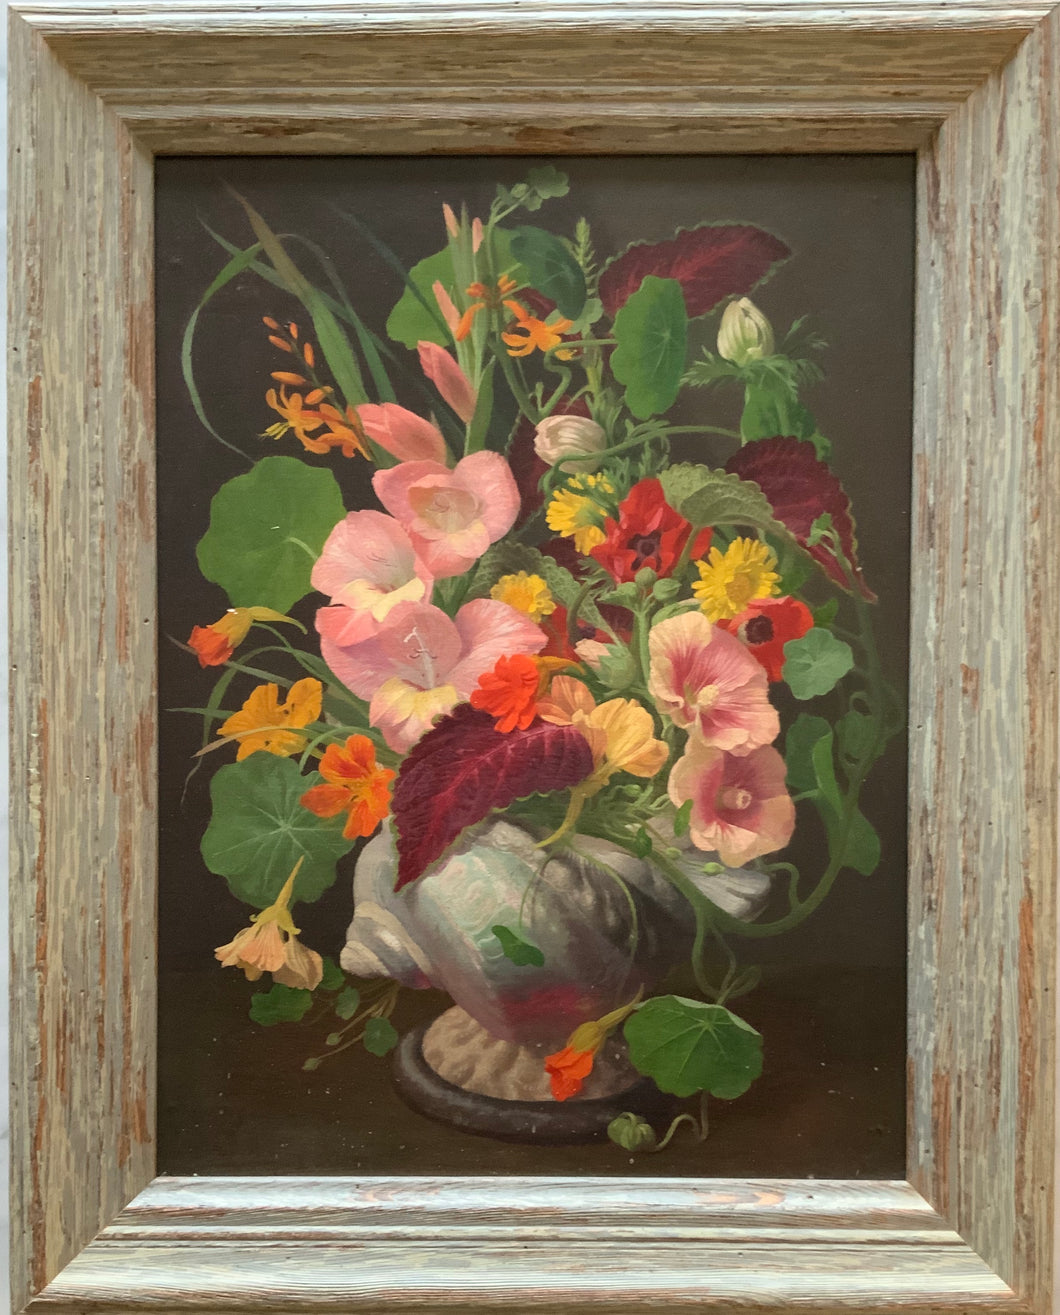 Oil painting on board: Still life of flowers in a conch shell (John E. Nichollas)